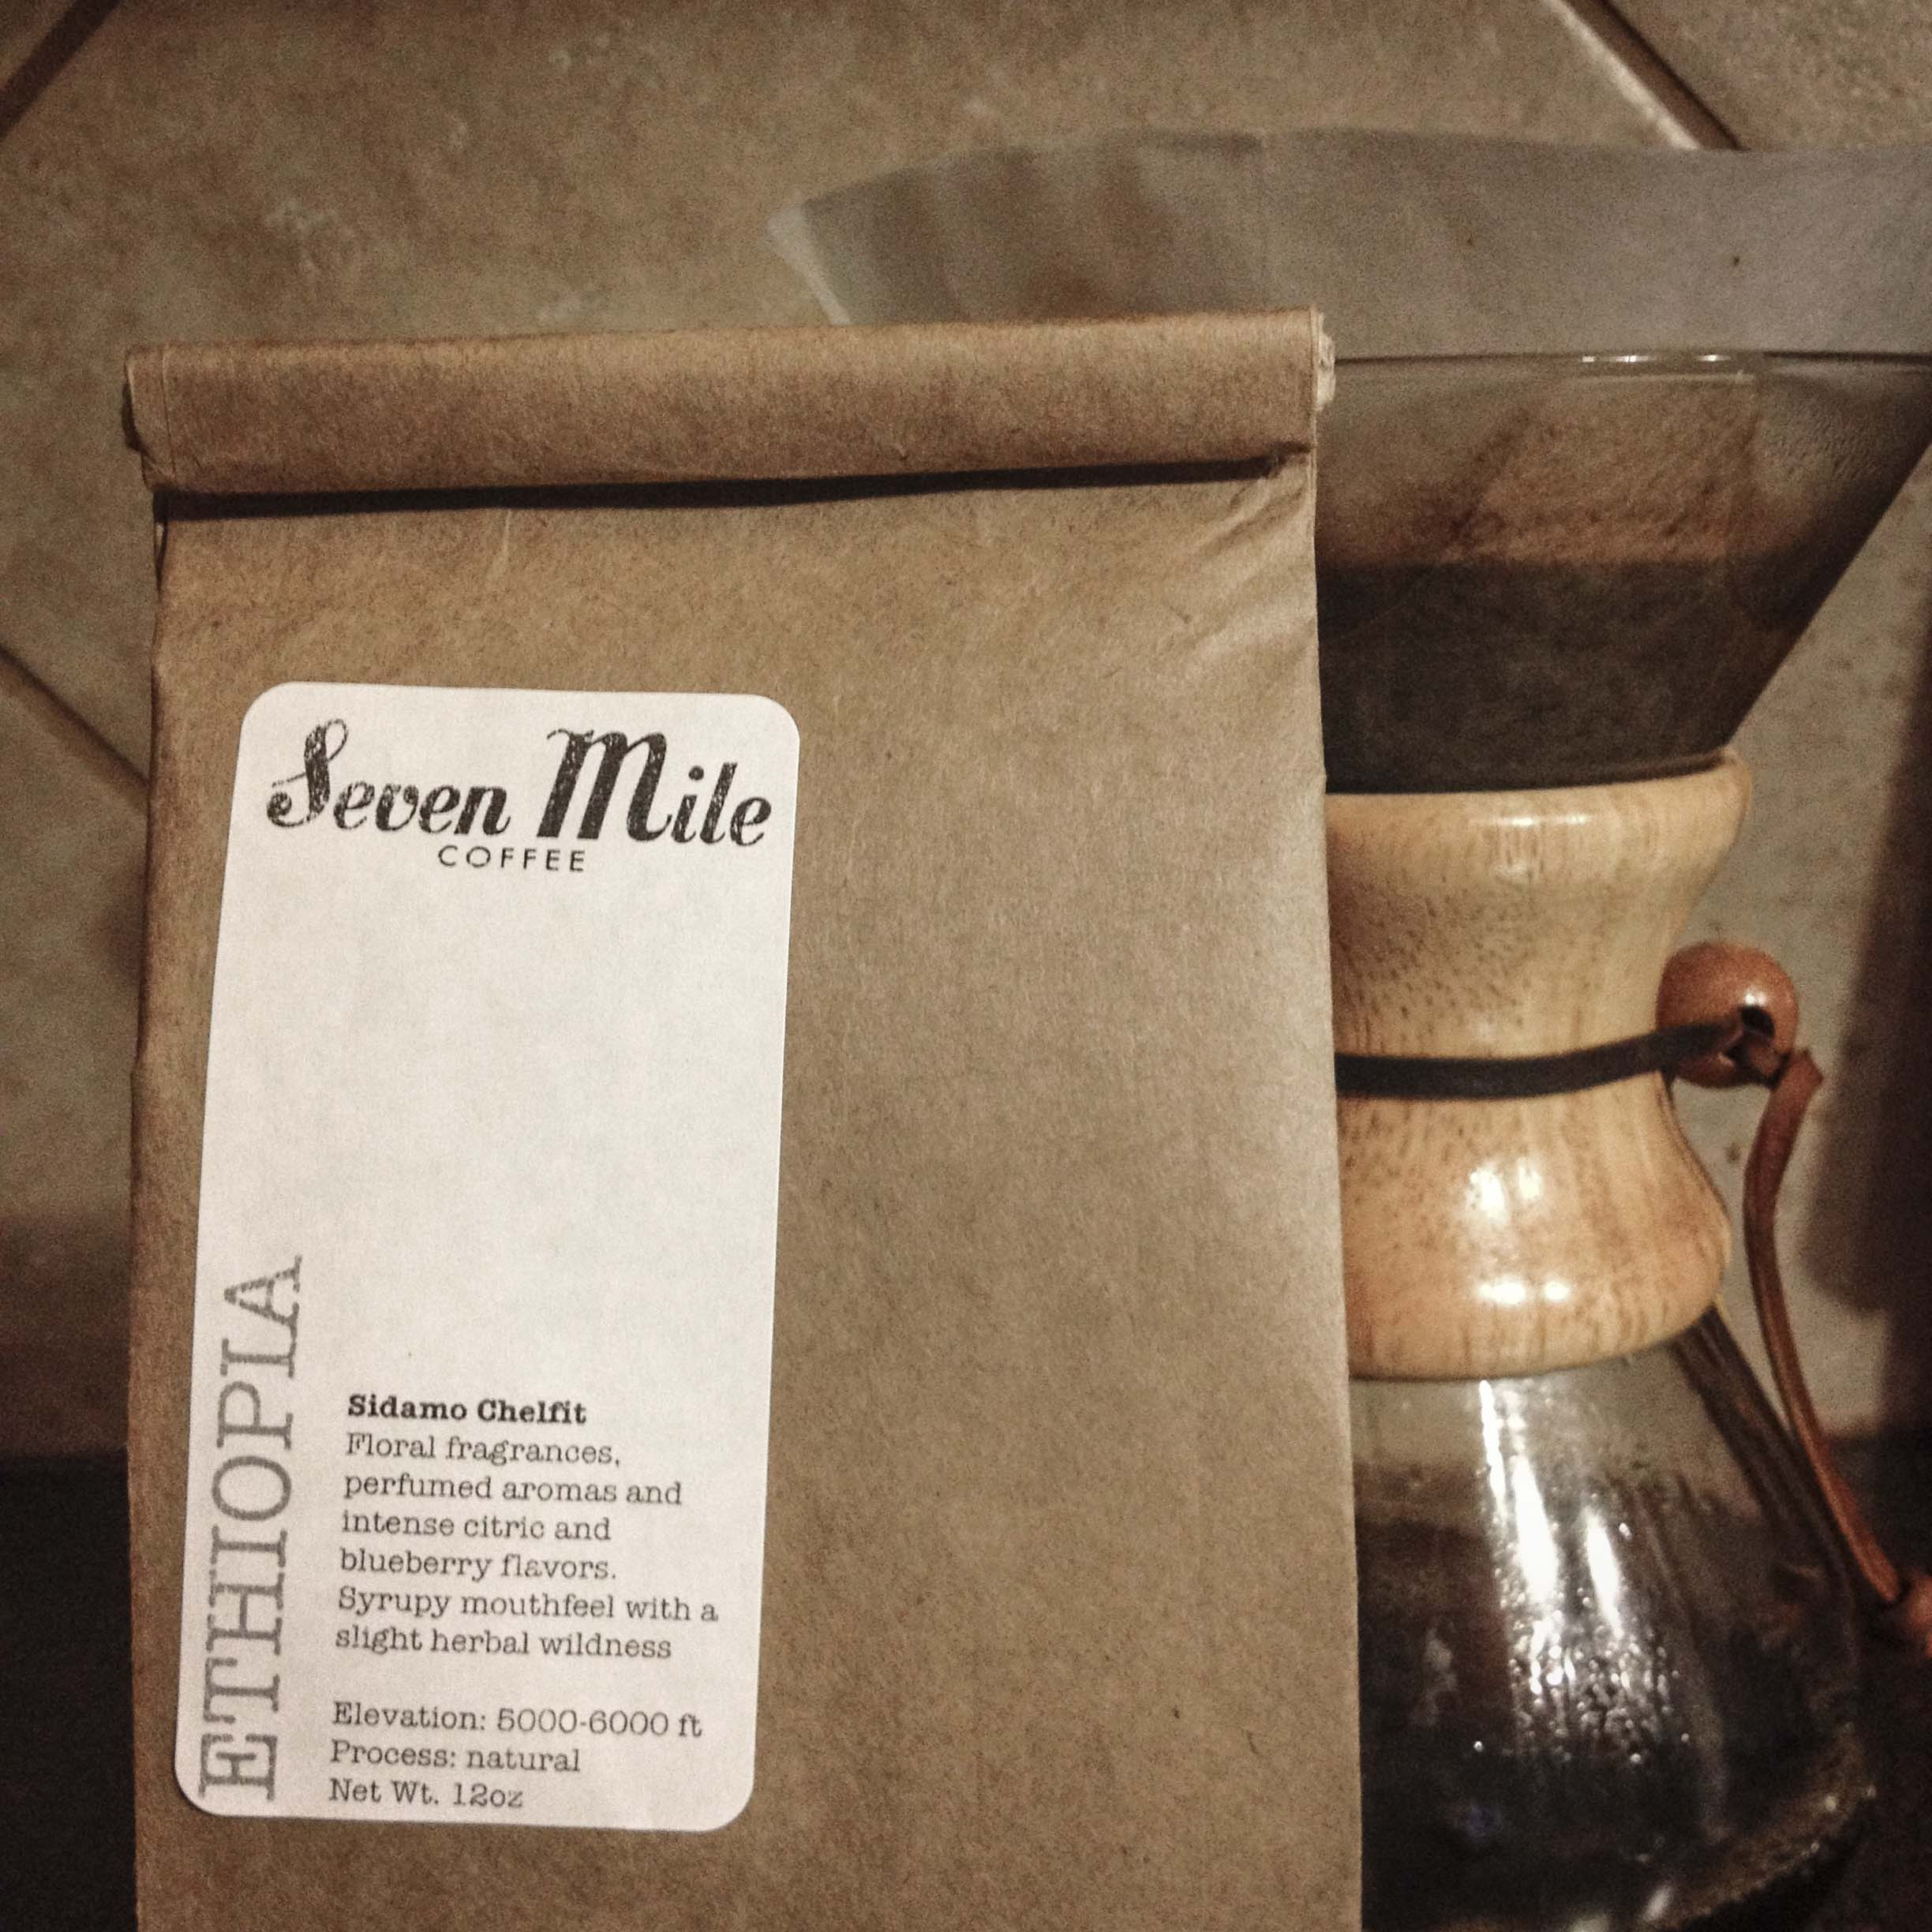 For an entirely different upcoming feature, we purchased a few bags of beans from Seven Mile and their new coffee roaster and had ourselves a couple of tastings. Oh, the things we do for you people.